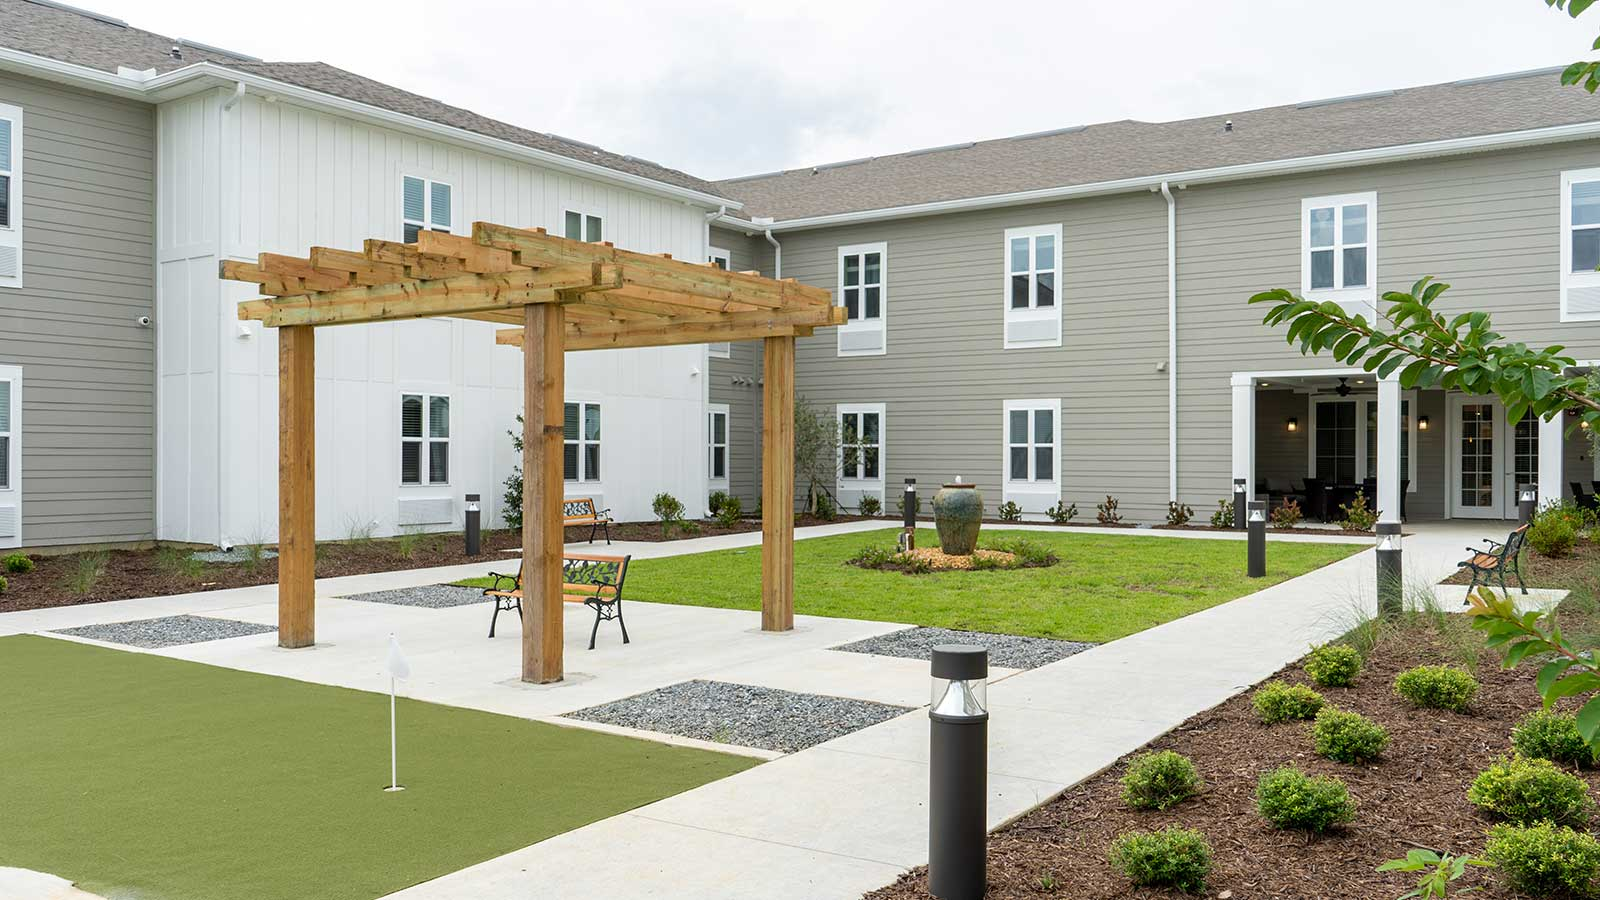 View of landscaped courtyard with outdoor seating and covered patio at The Canopy at Azalea Grove assisted living and memory care community in Valdosta, GA